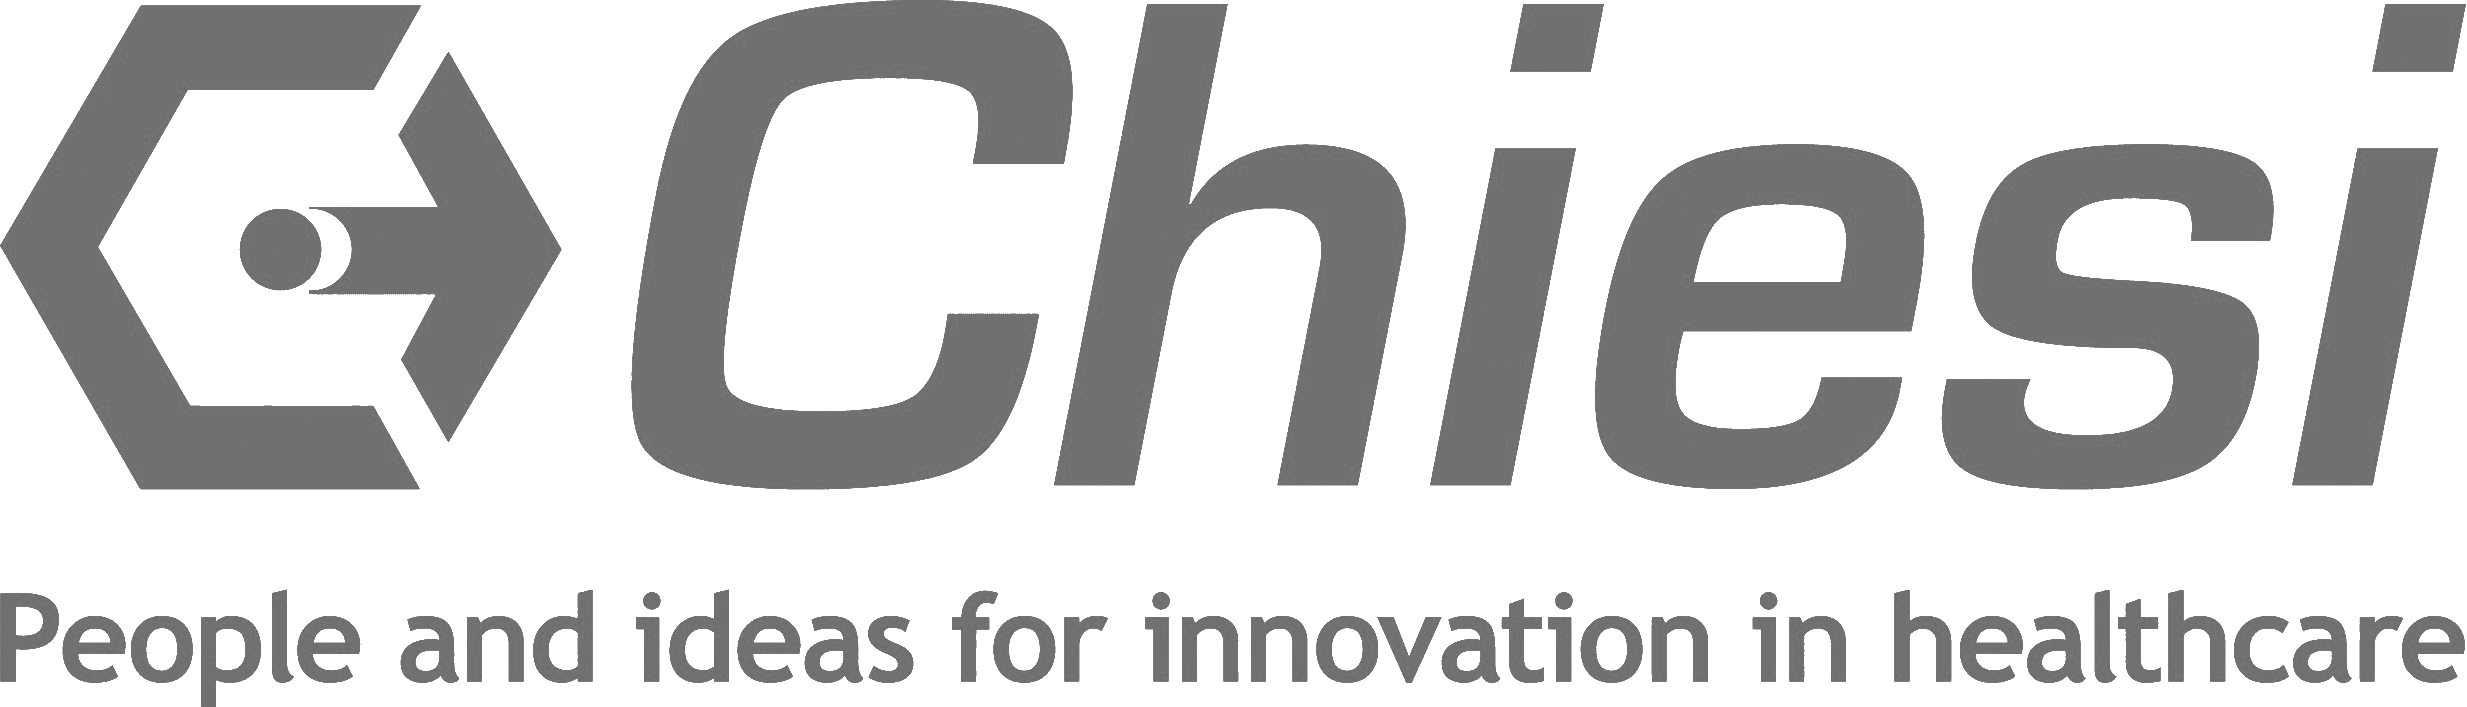 Chiesi_GmbH-kunden.png